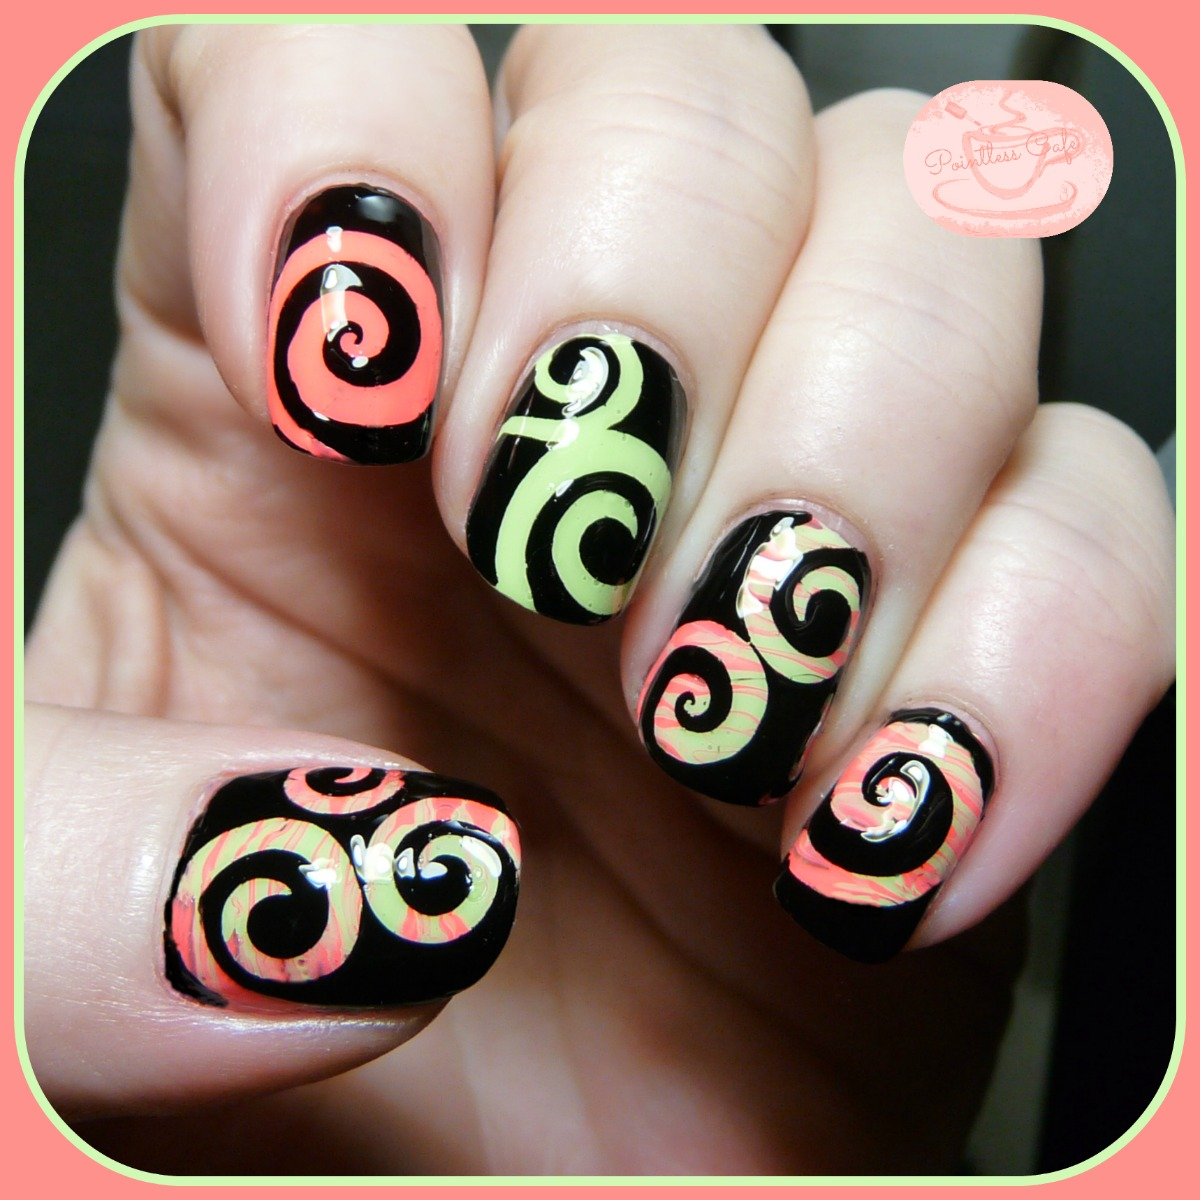 Nail Of The Day Spiral Nail Art With Kbshimmer Swirls Nail Vinyl